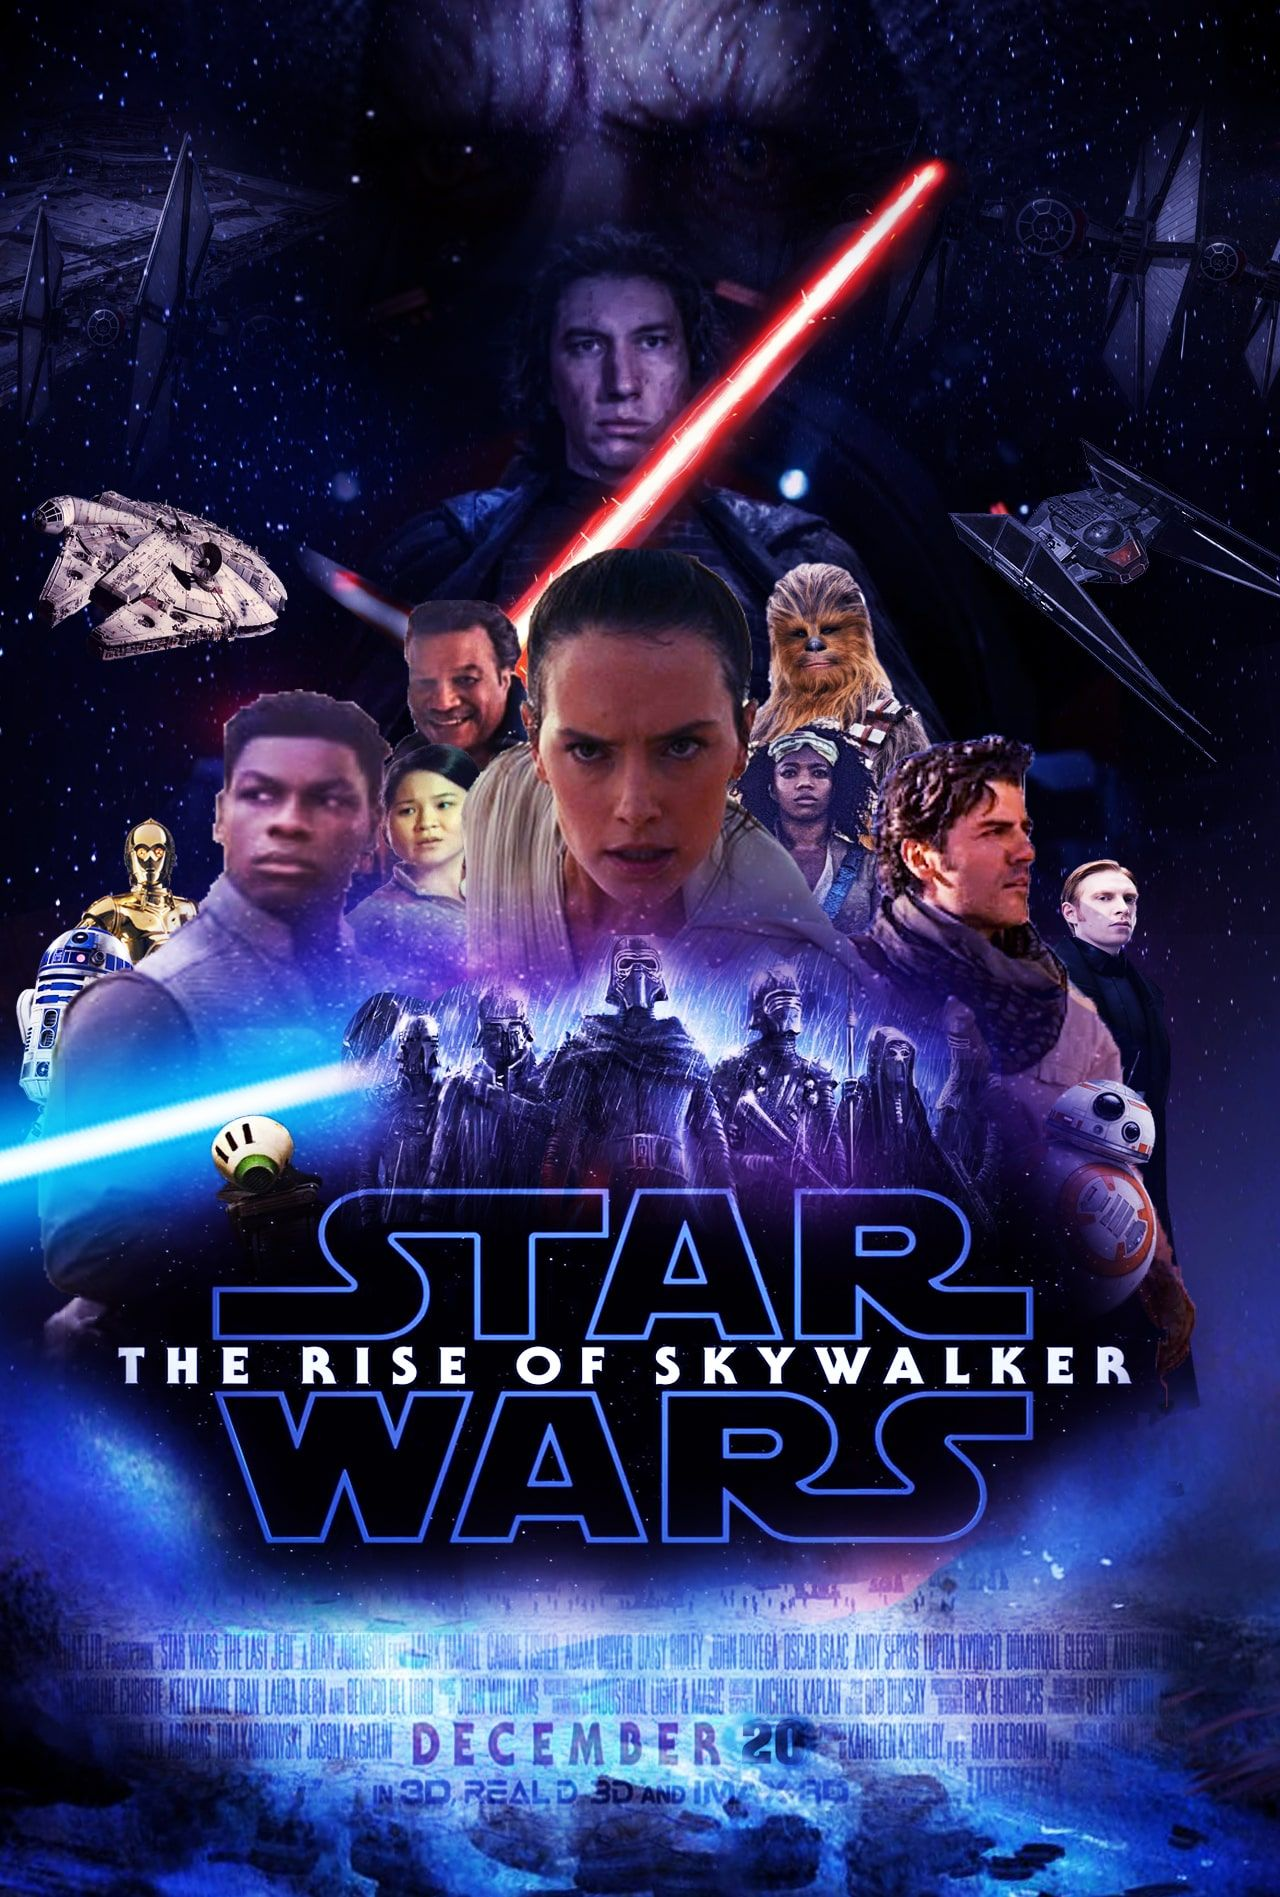 Star Wars The Rise Of Skywalker Star Wars Movies Posters Star Wars Episodes Star Wars Watch